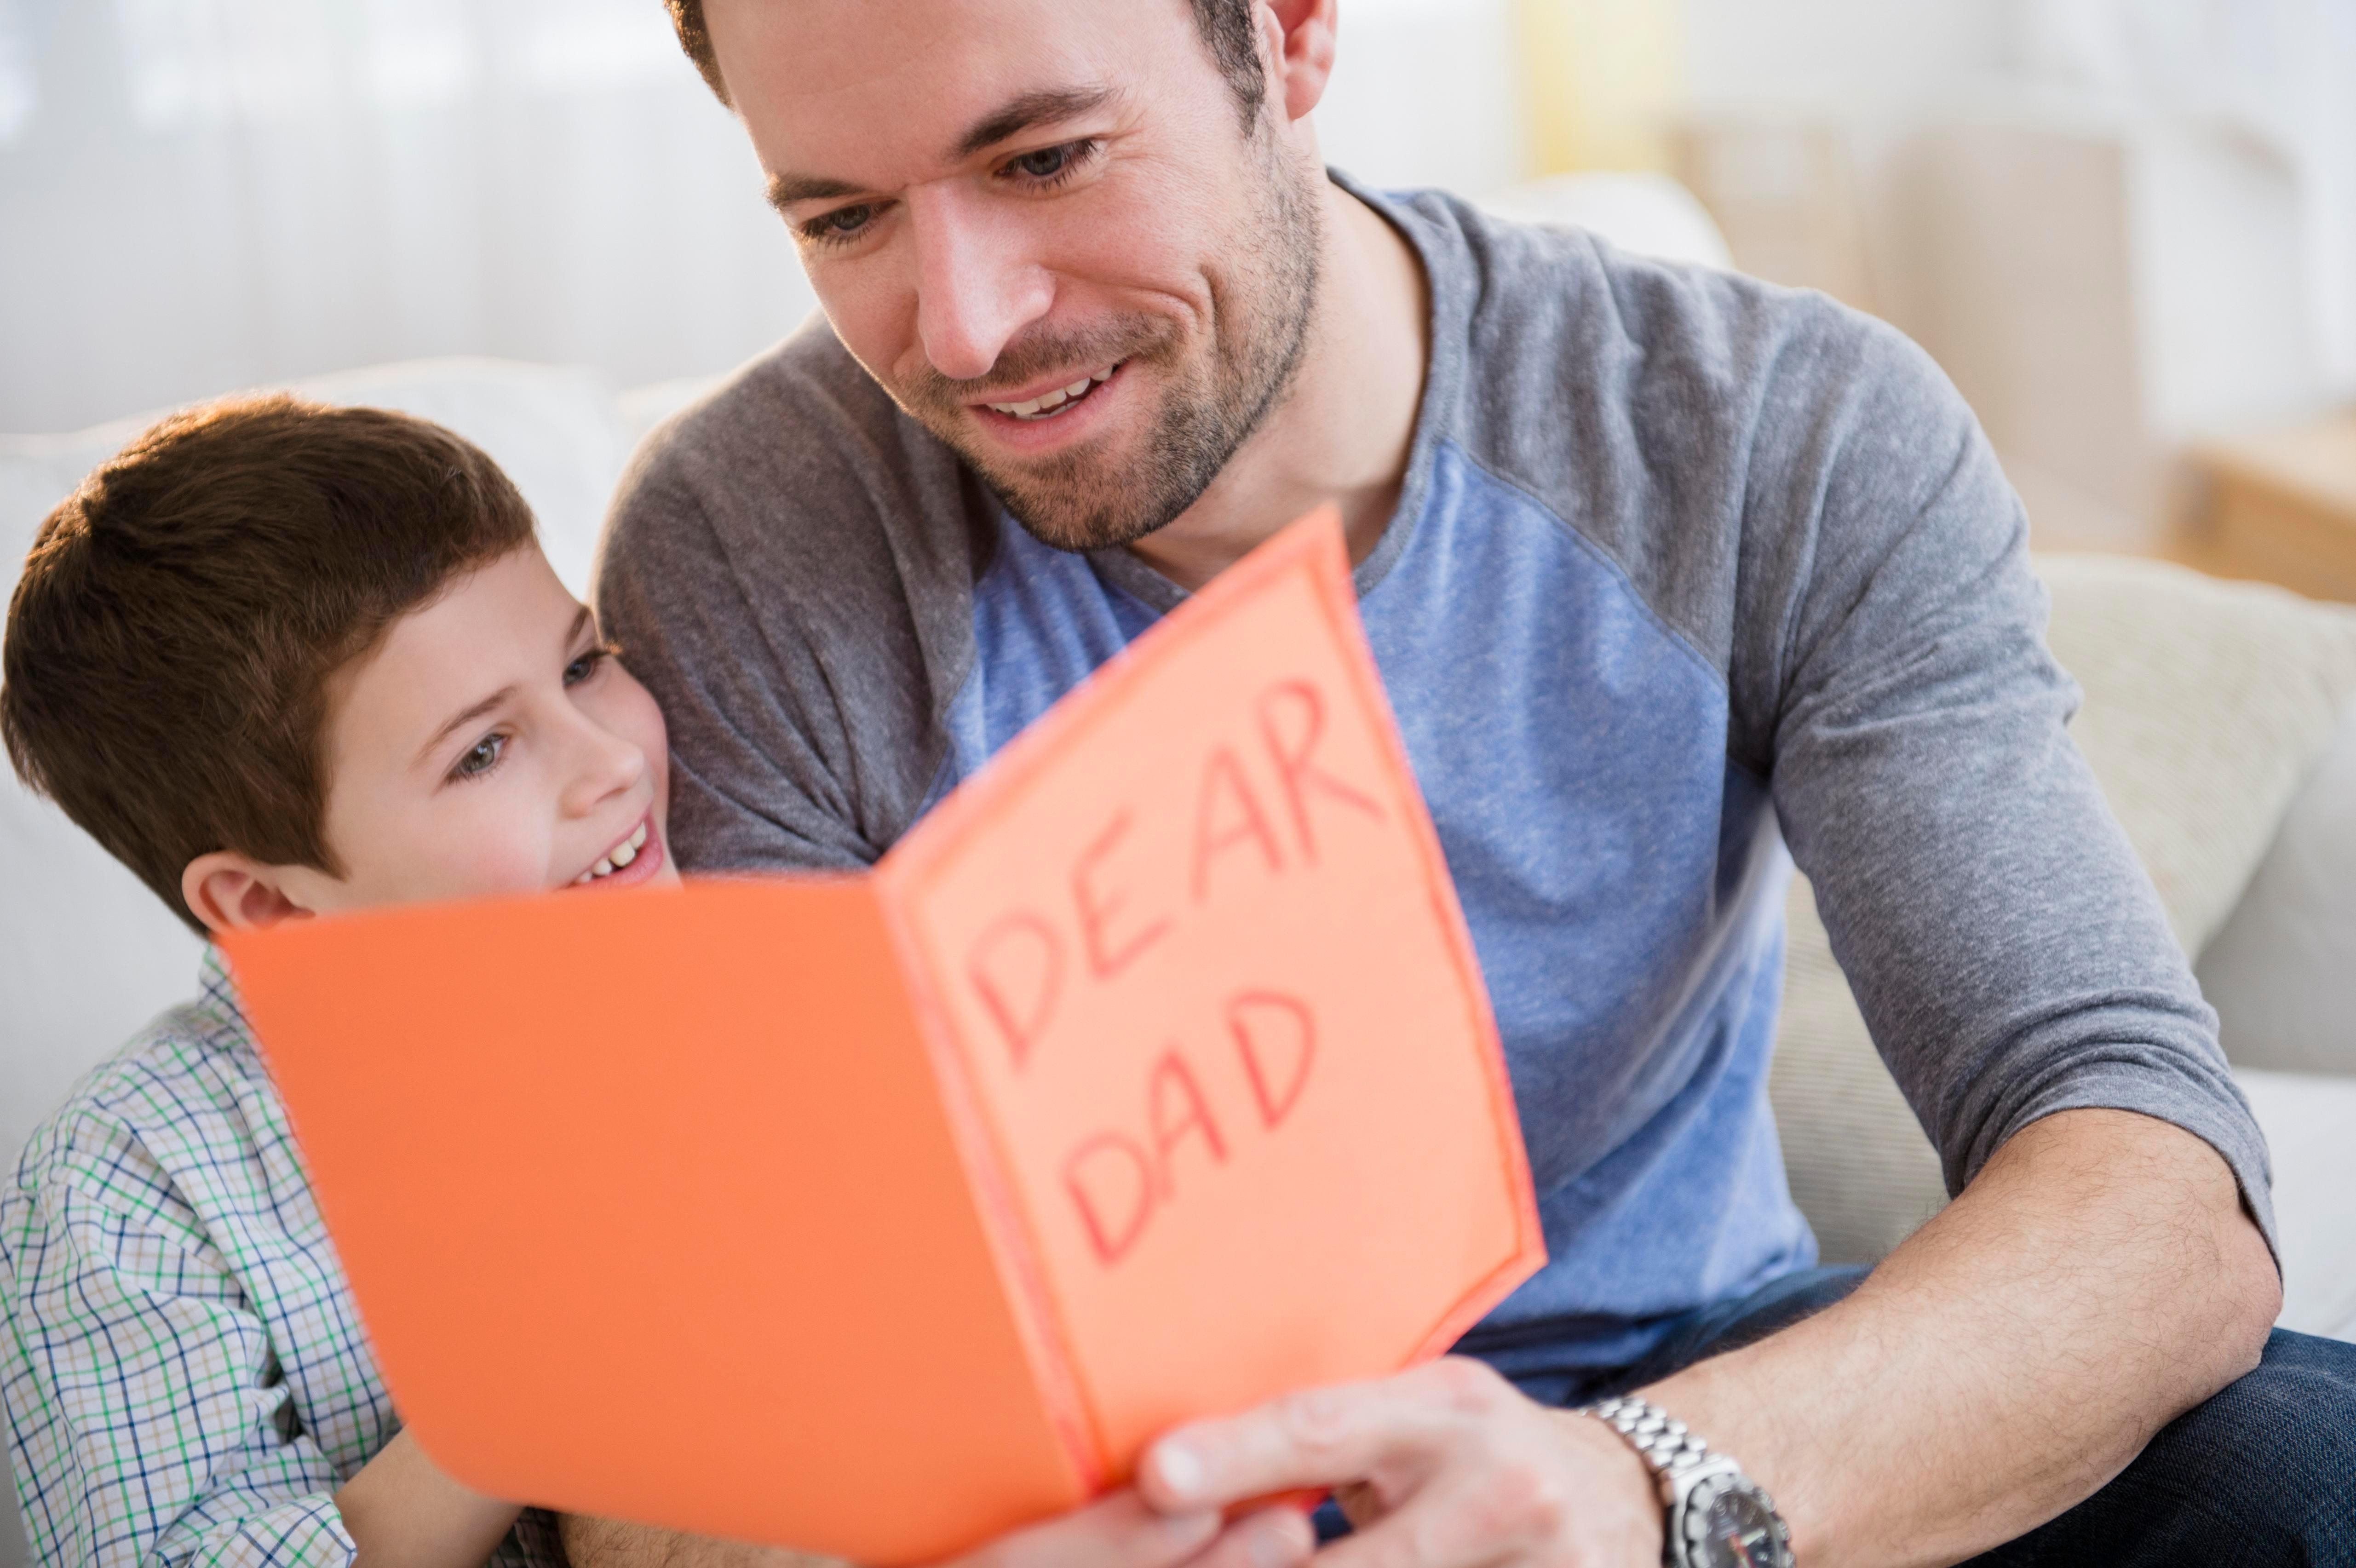 Father's Day card ideas – quotes, poems and what to write to your dad on June 17